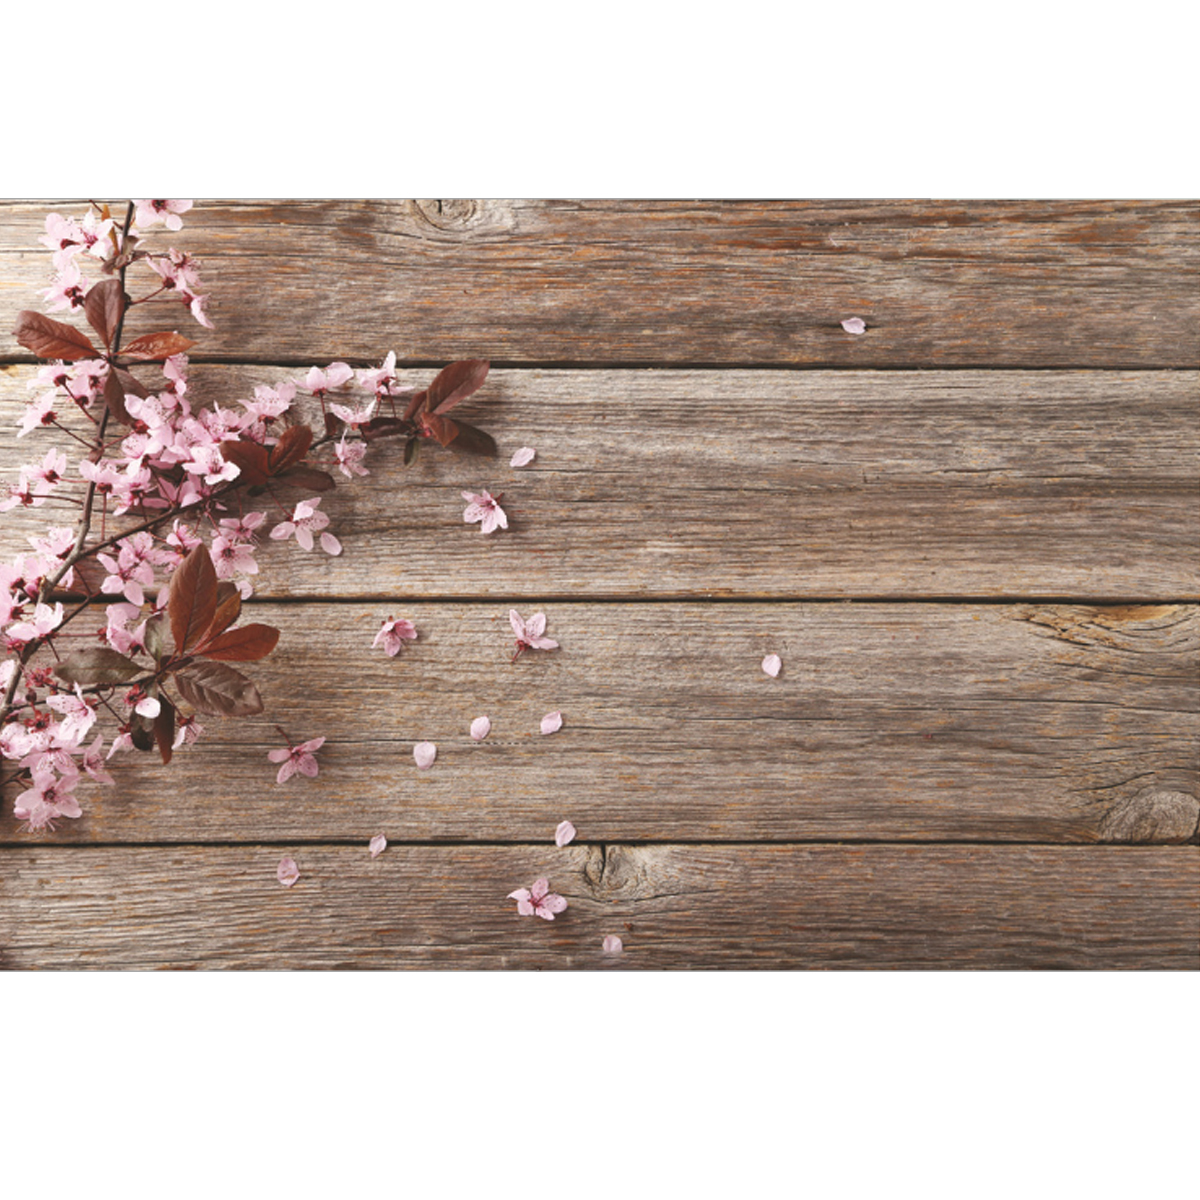 5x3FT Pink Flower Wood Wall Photography Backdrop Studio Prop Background